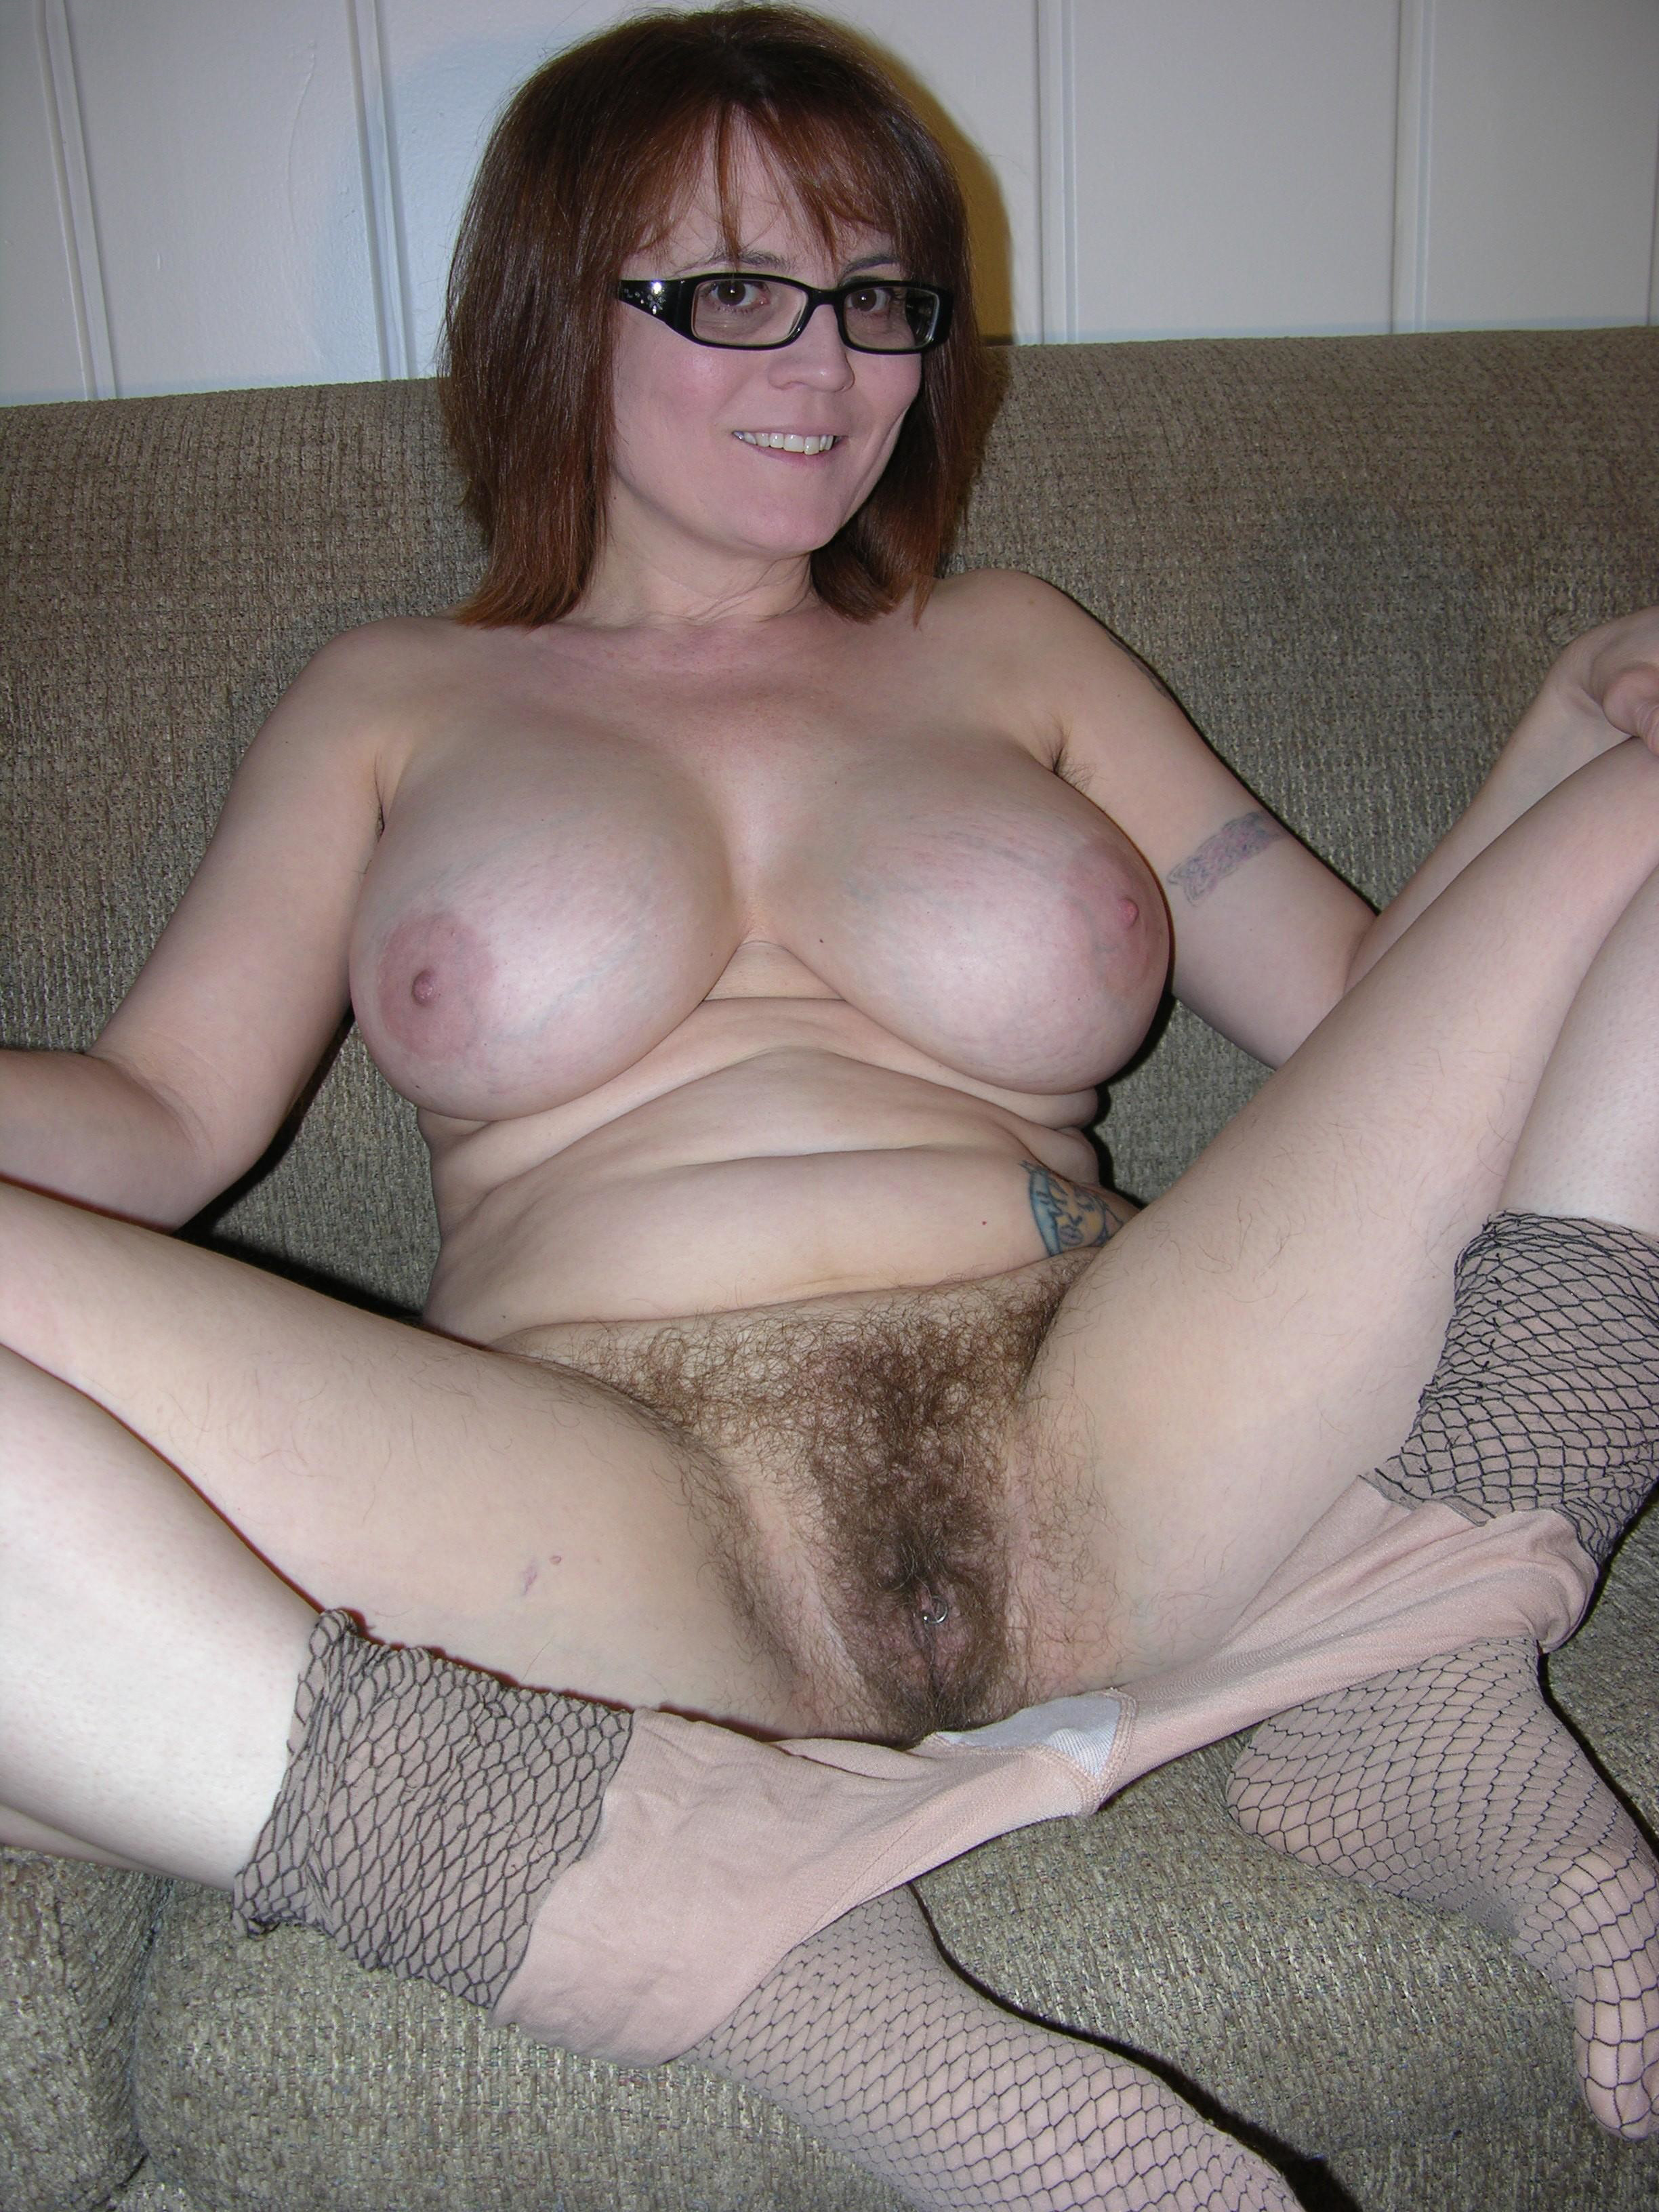 Hairy pussy amateur nude